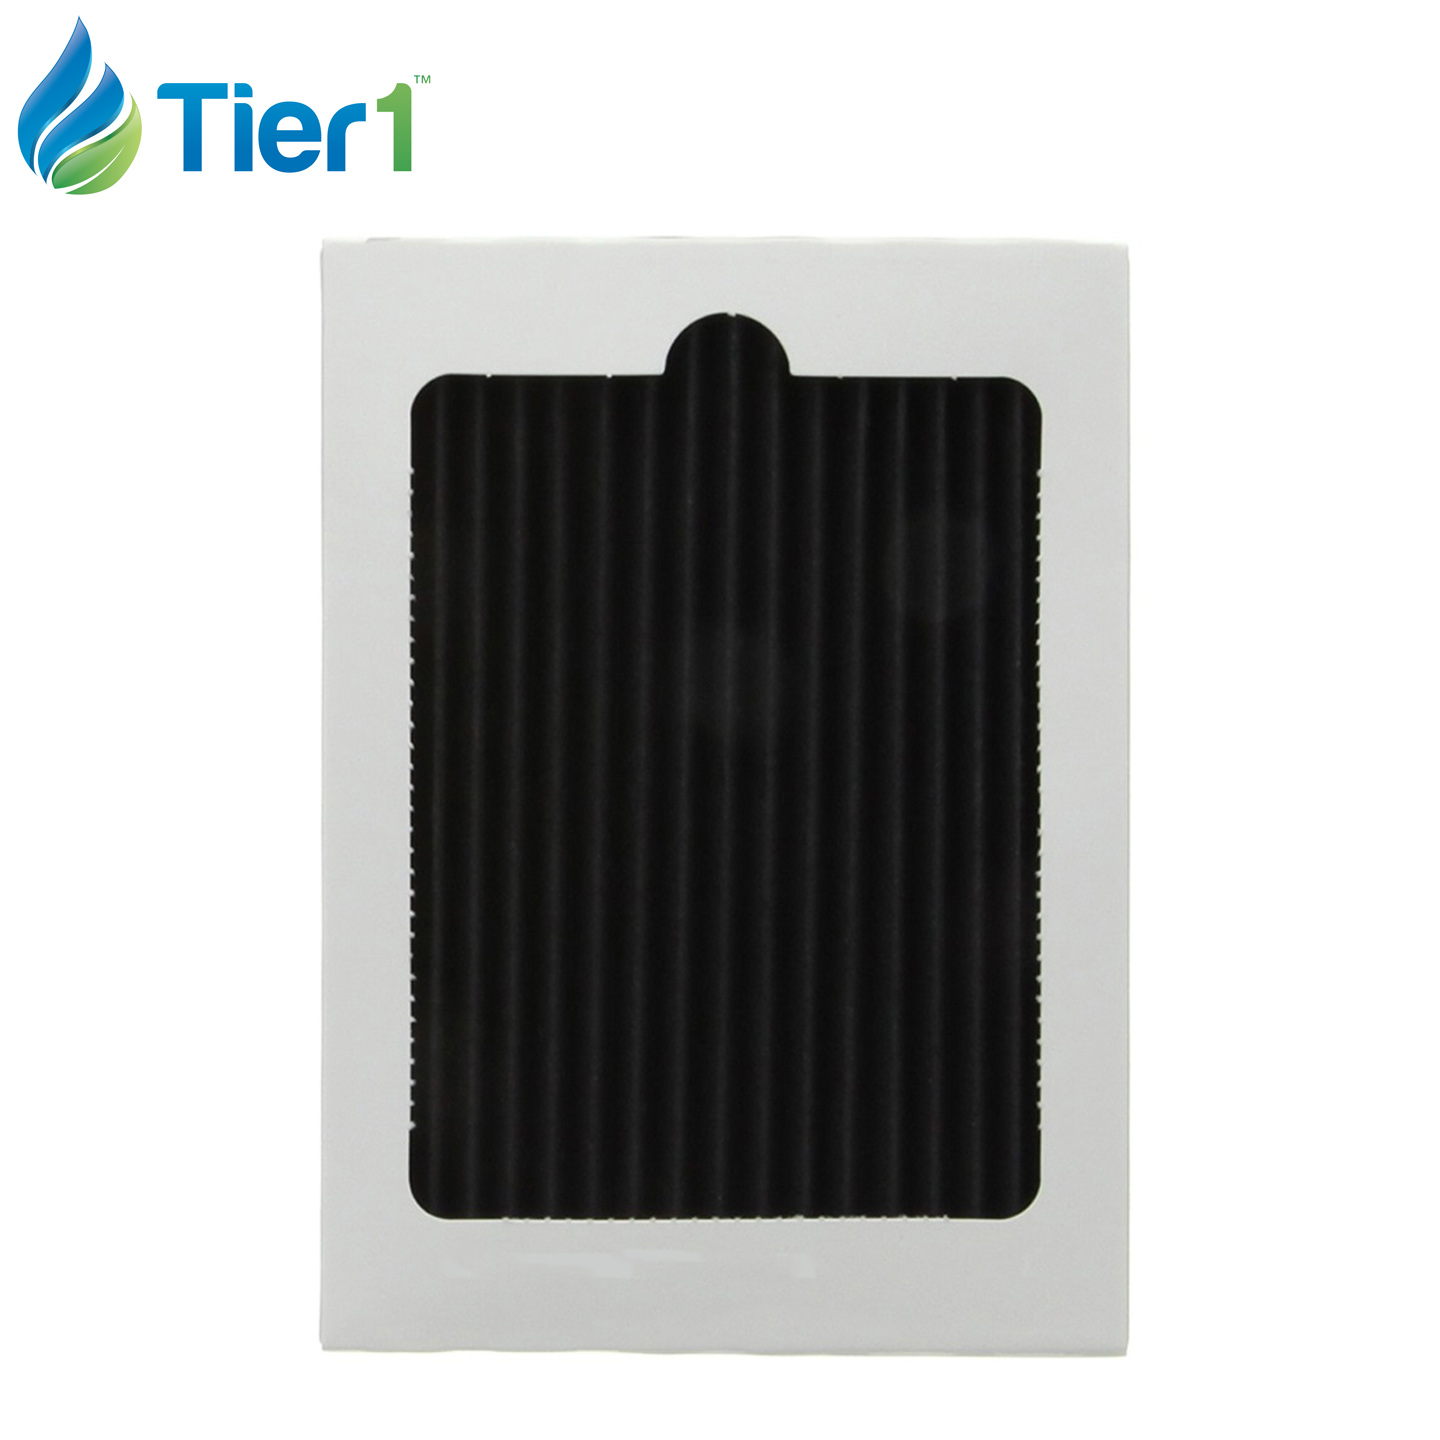 Tier1 Refrigerator Air Filters